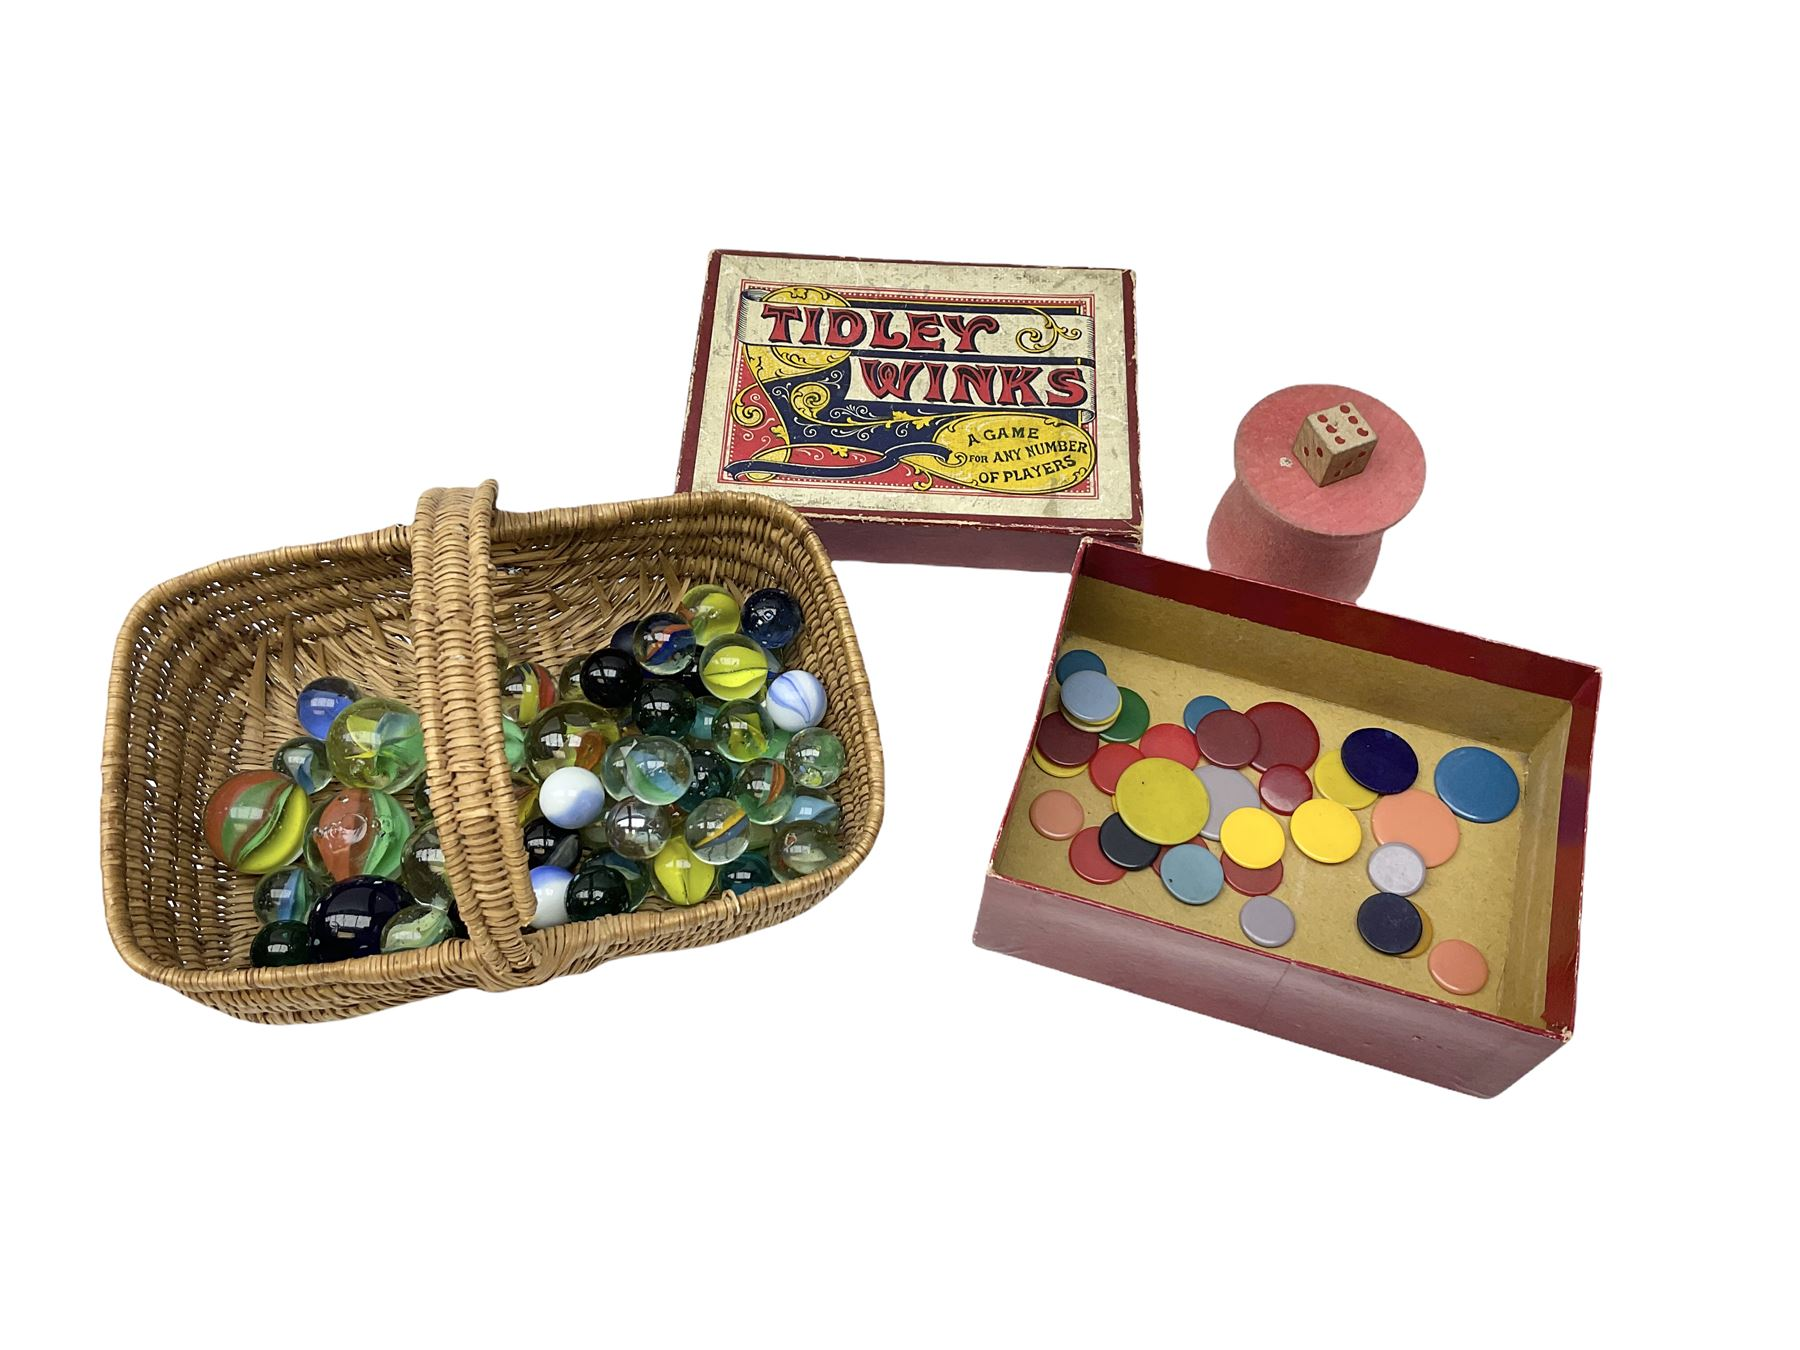 Vintage musical toys including three tin-plate drums by Chad Valley etc; two sets of cymbals; five m - Image 5 of 5